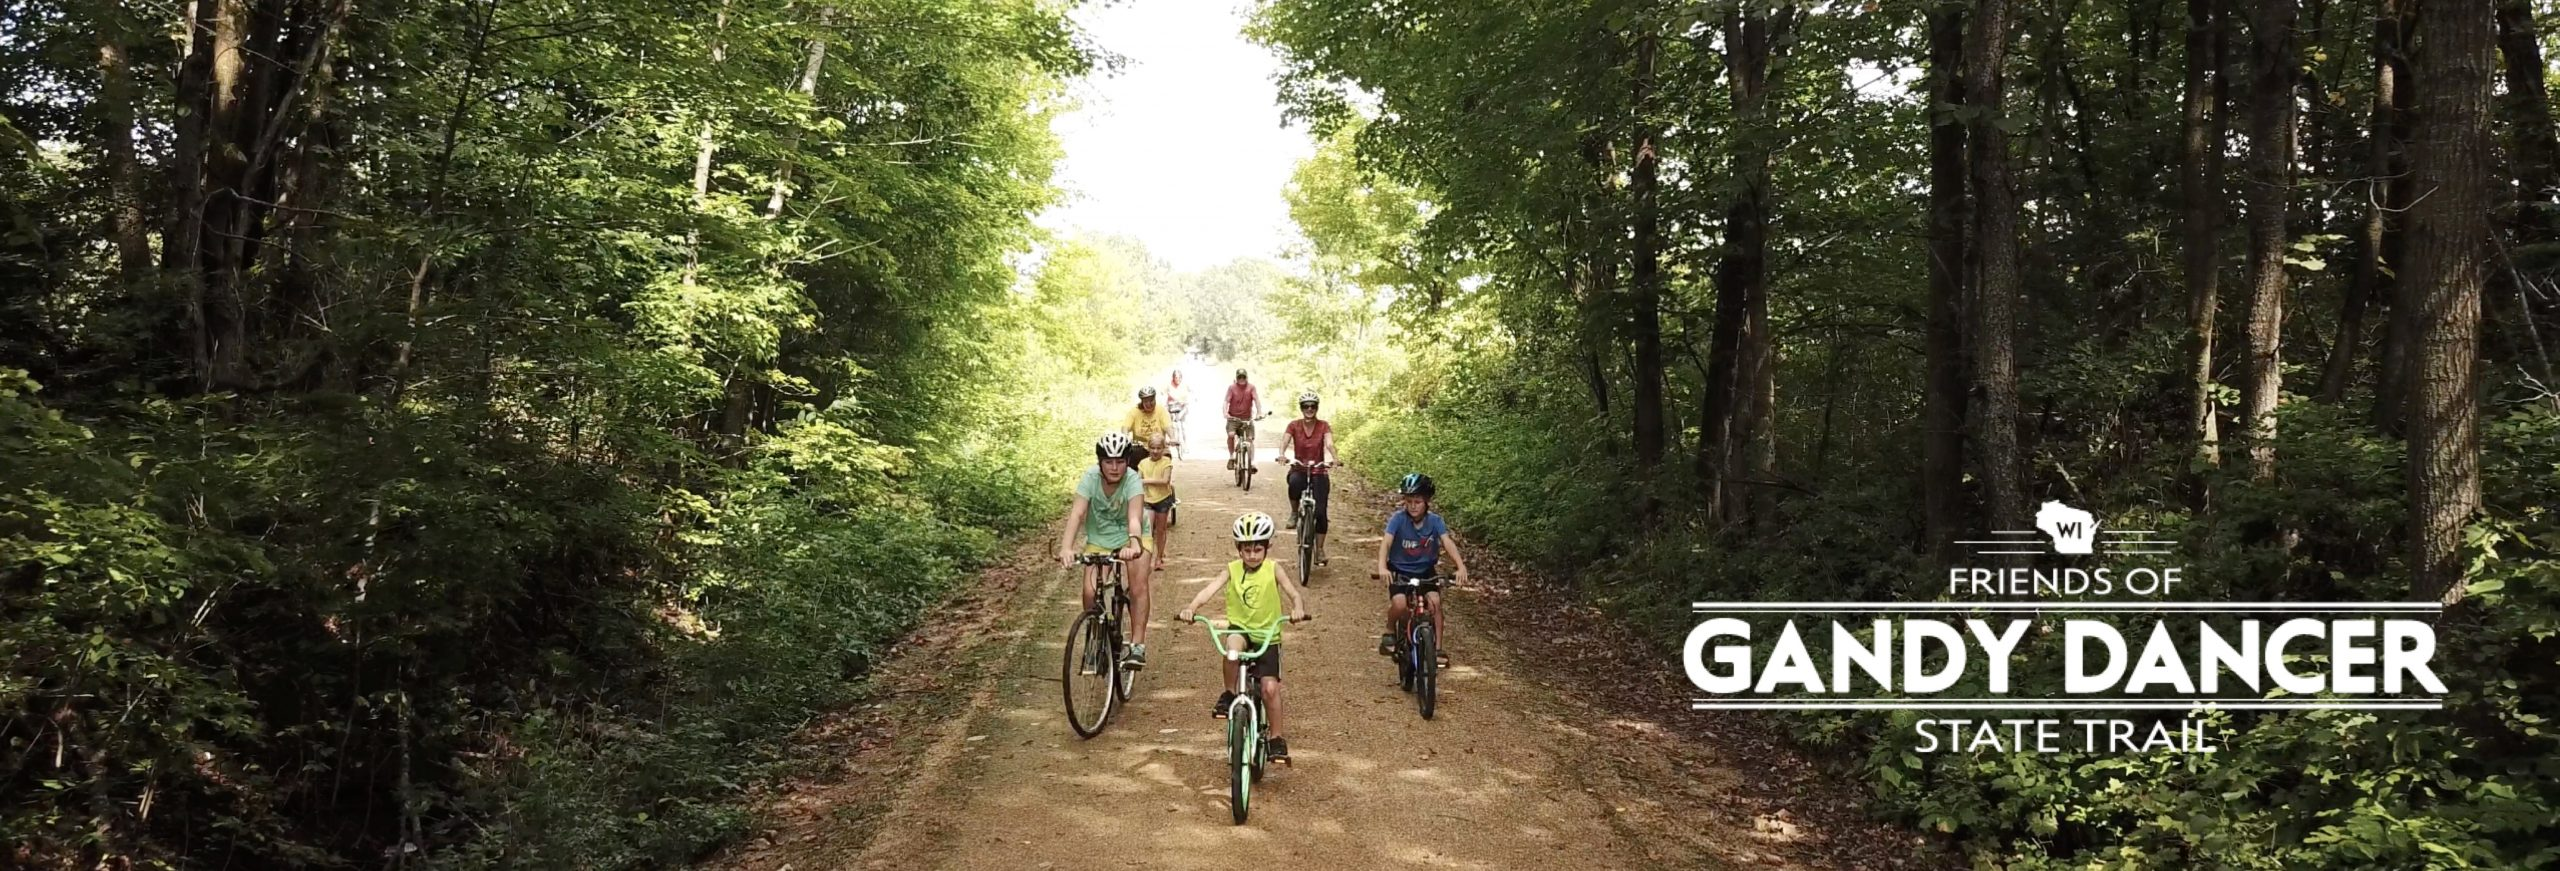 Friends of the Gandy Dancer State Trail